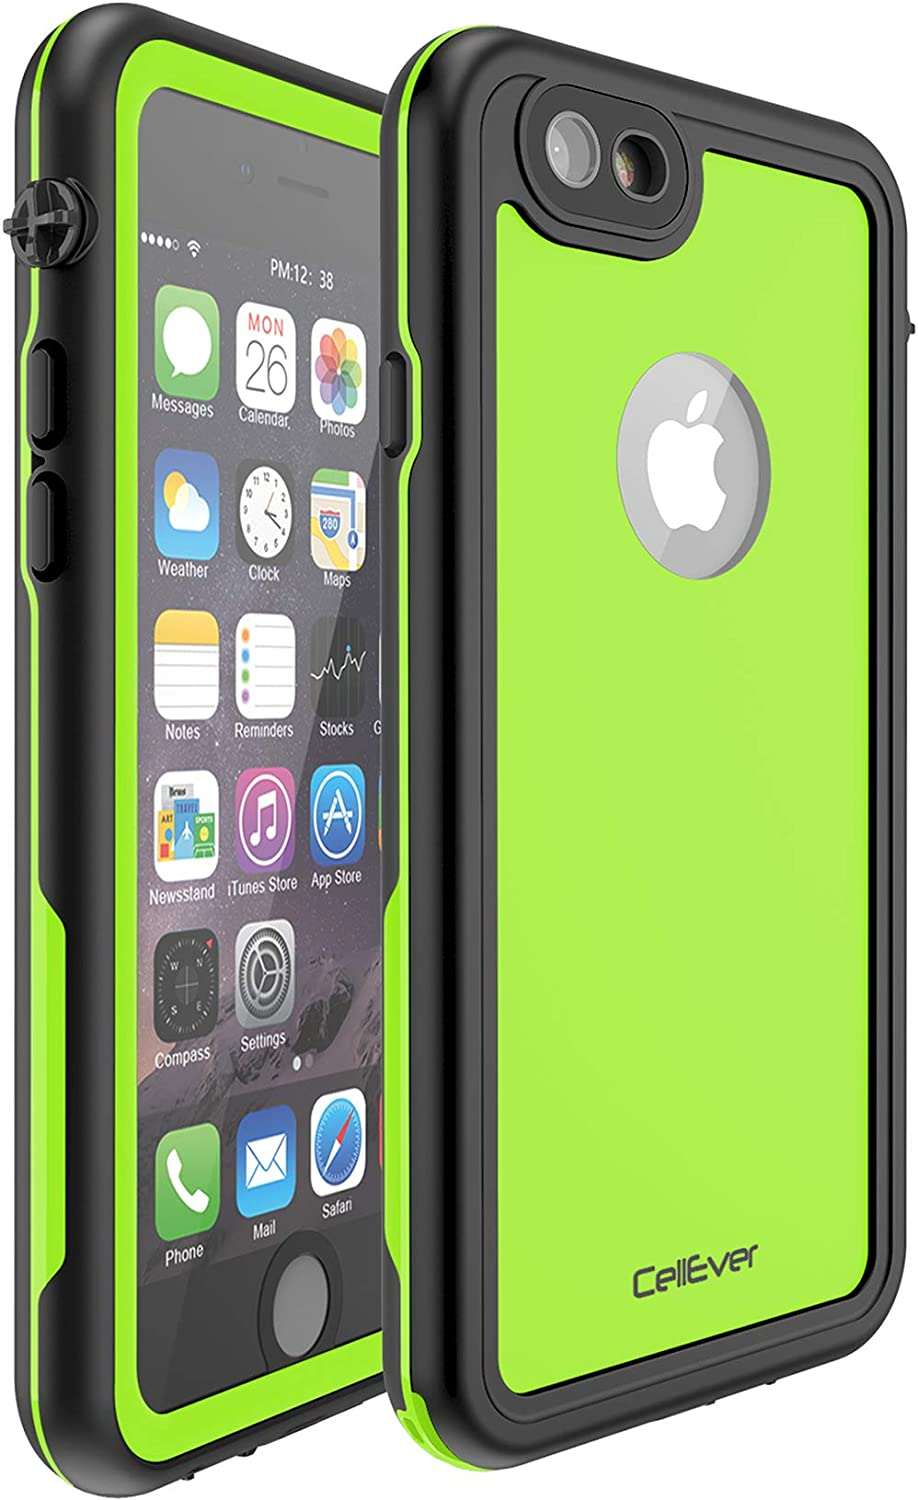 CellEver iPhone 6 Plus / 6s Plus Waterproof Case Shockproof IP68 Certified SandProof Snowproof Full Body Protective Cover Fits iPhone 6 Plus and iPhone 6s Plus KZ C-Lime Green